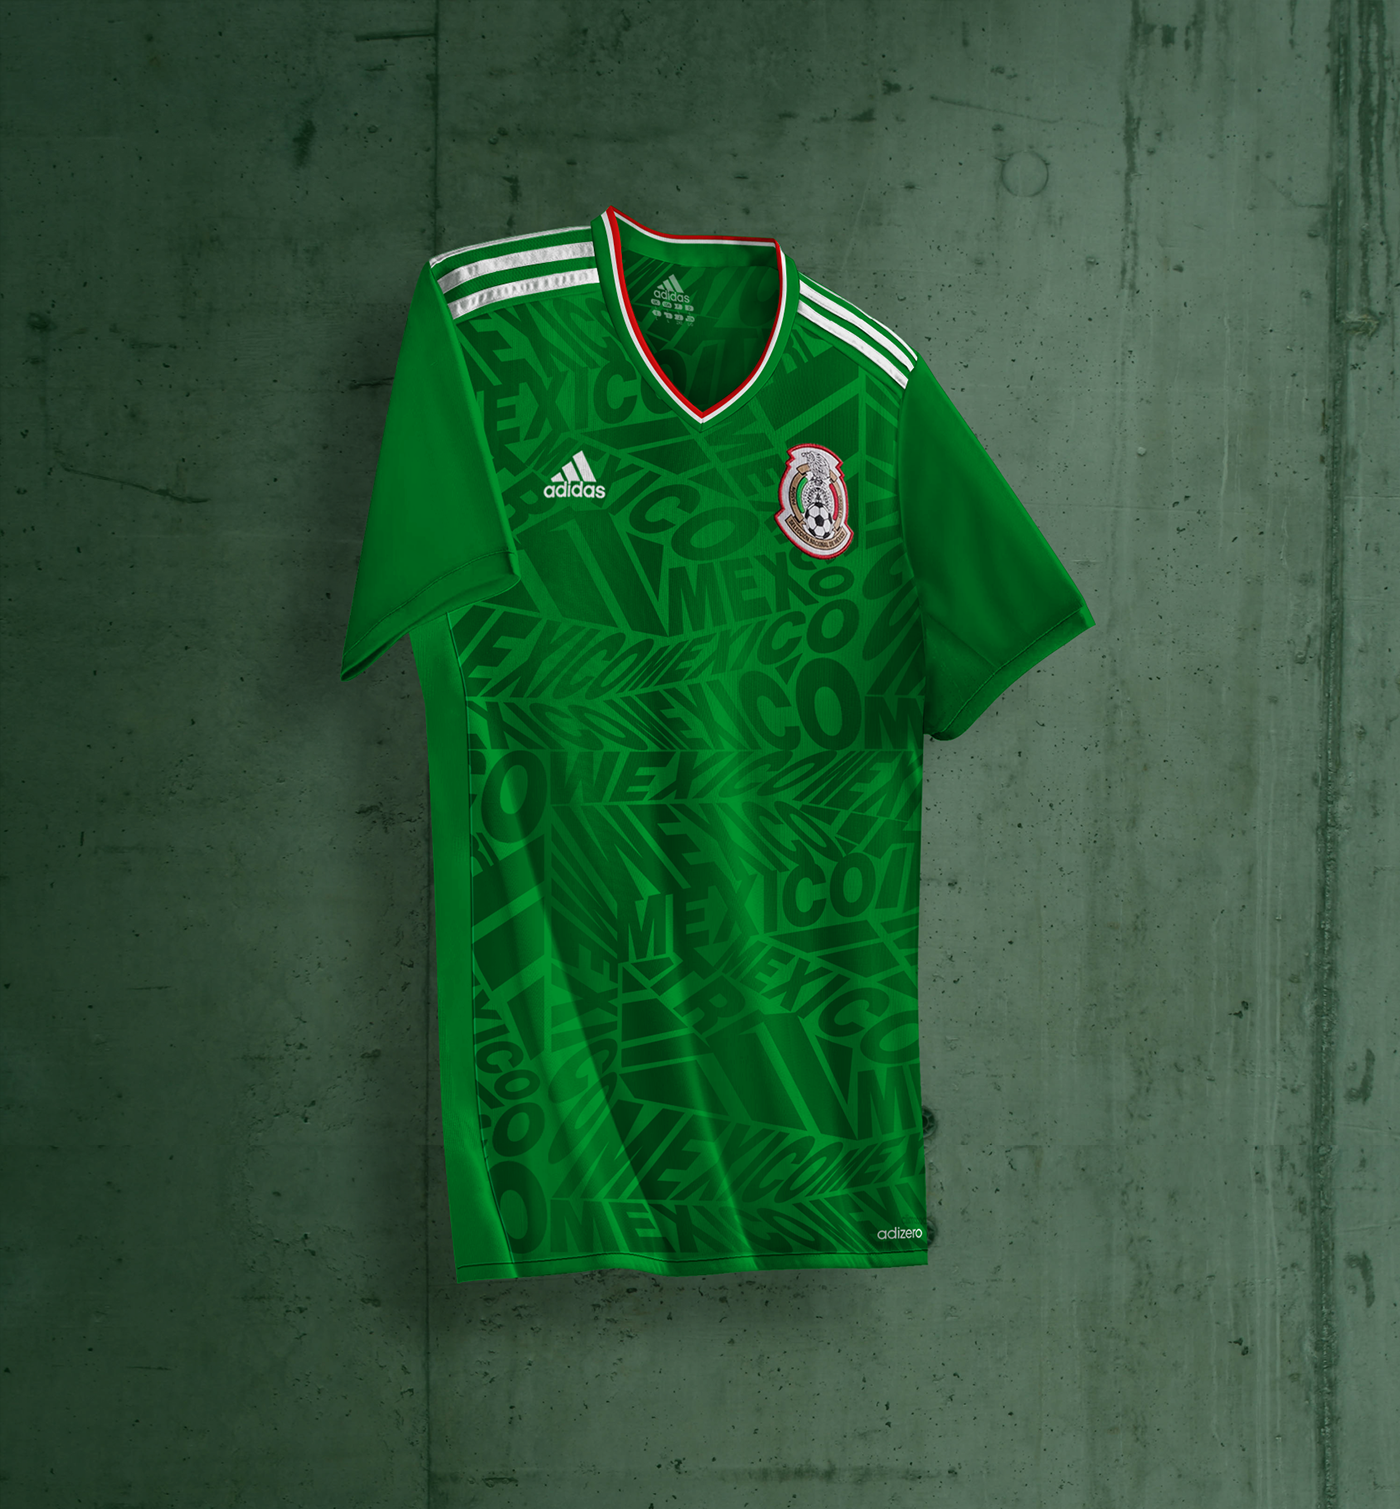 97a1d0c3d Jerseys   Patterns - Adidas 17-18 on Behance